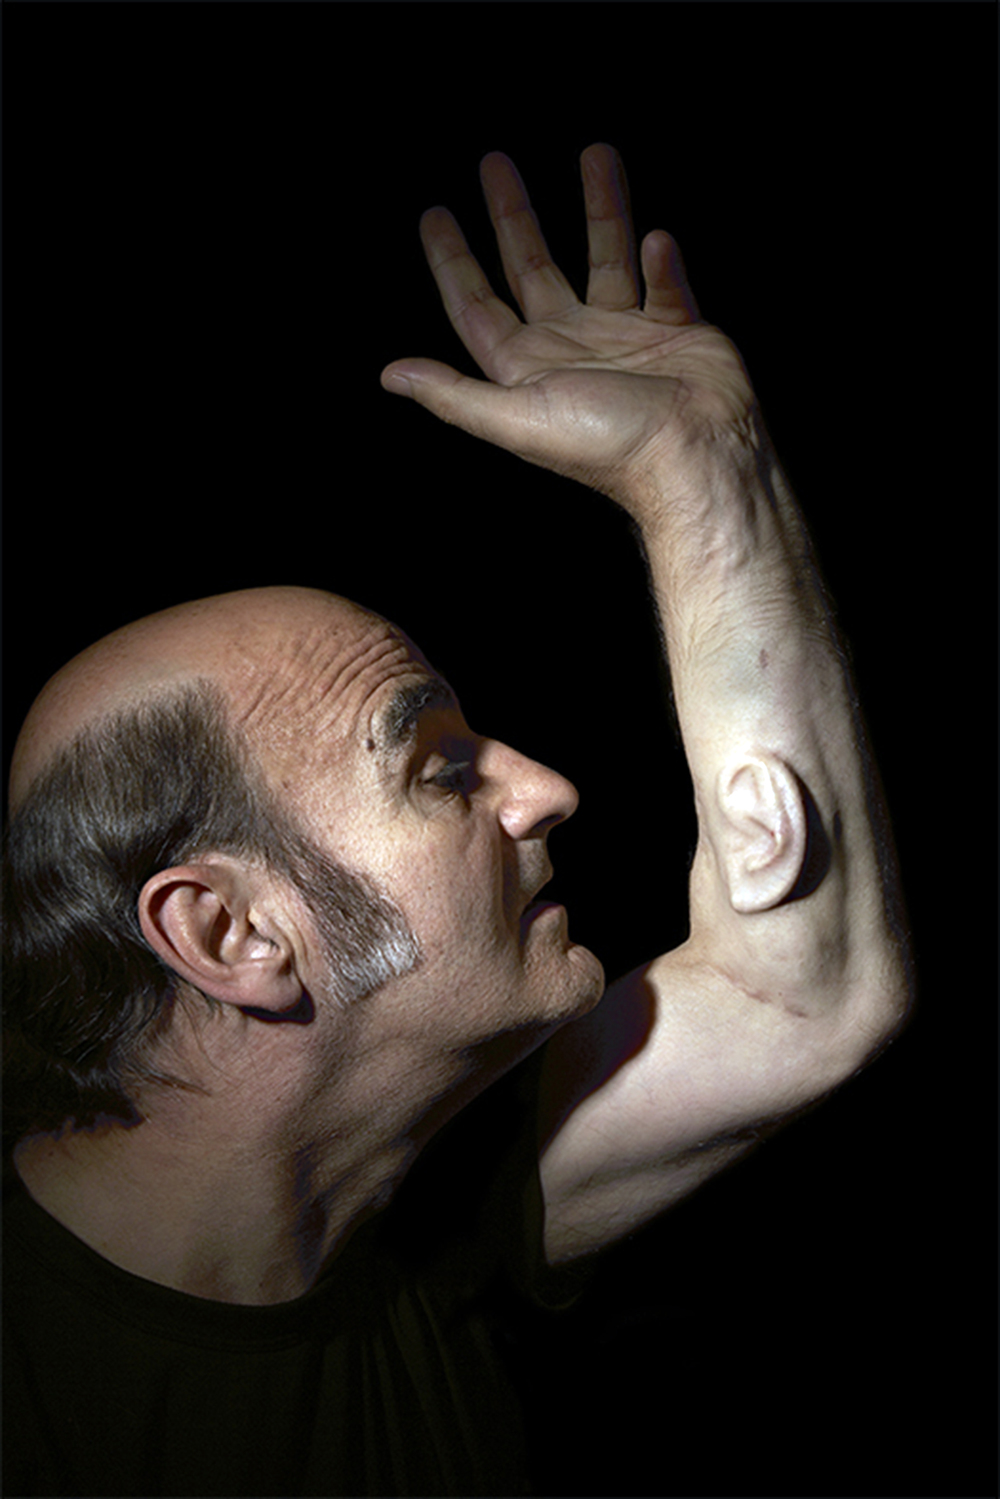 Ear On Arm- Stelarc1.jpg